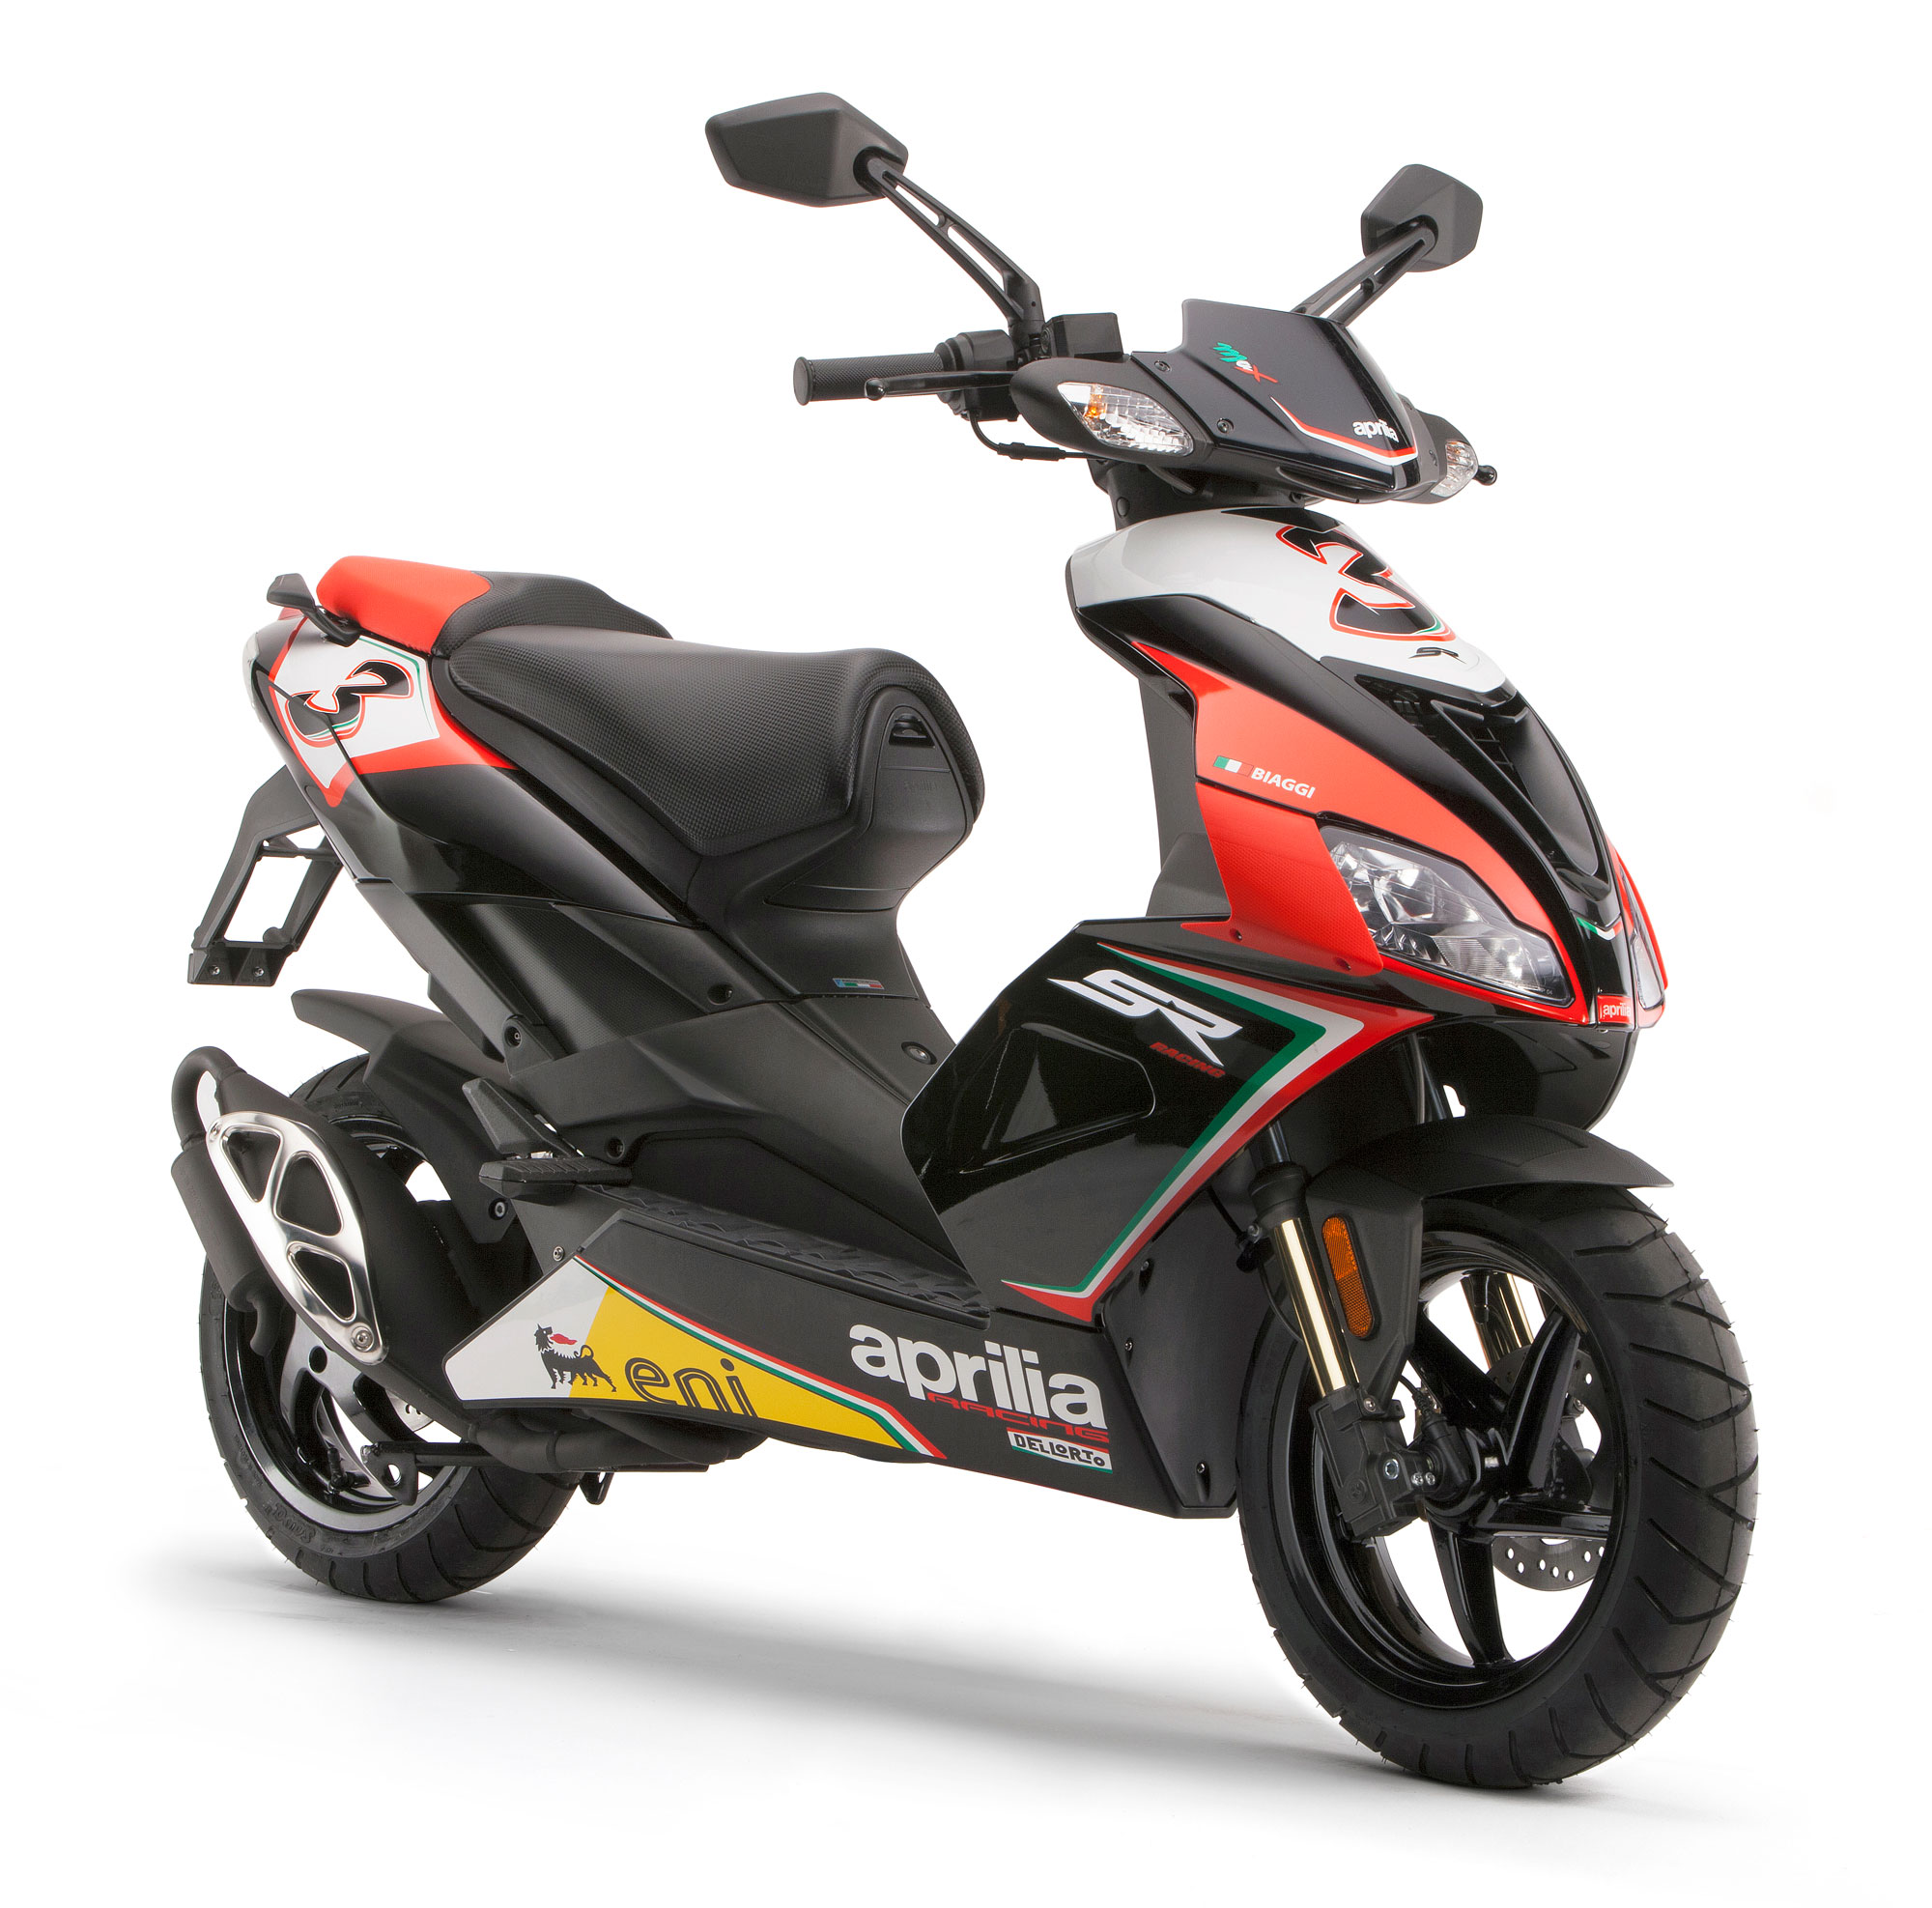 aprilia sr50 race replica specs 2012 2013 autoevolution. Black Bedroom Furniture Sets. Home Design Ideas